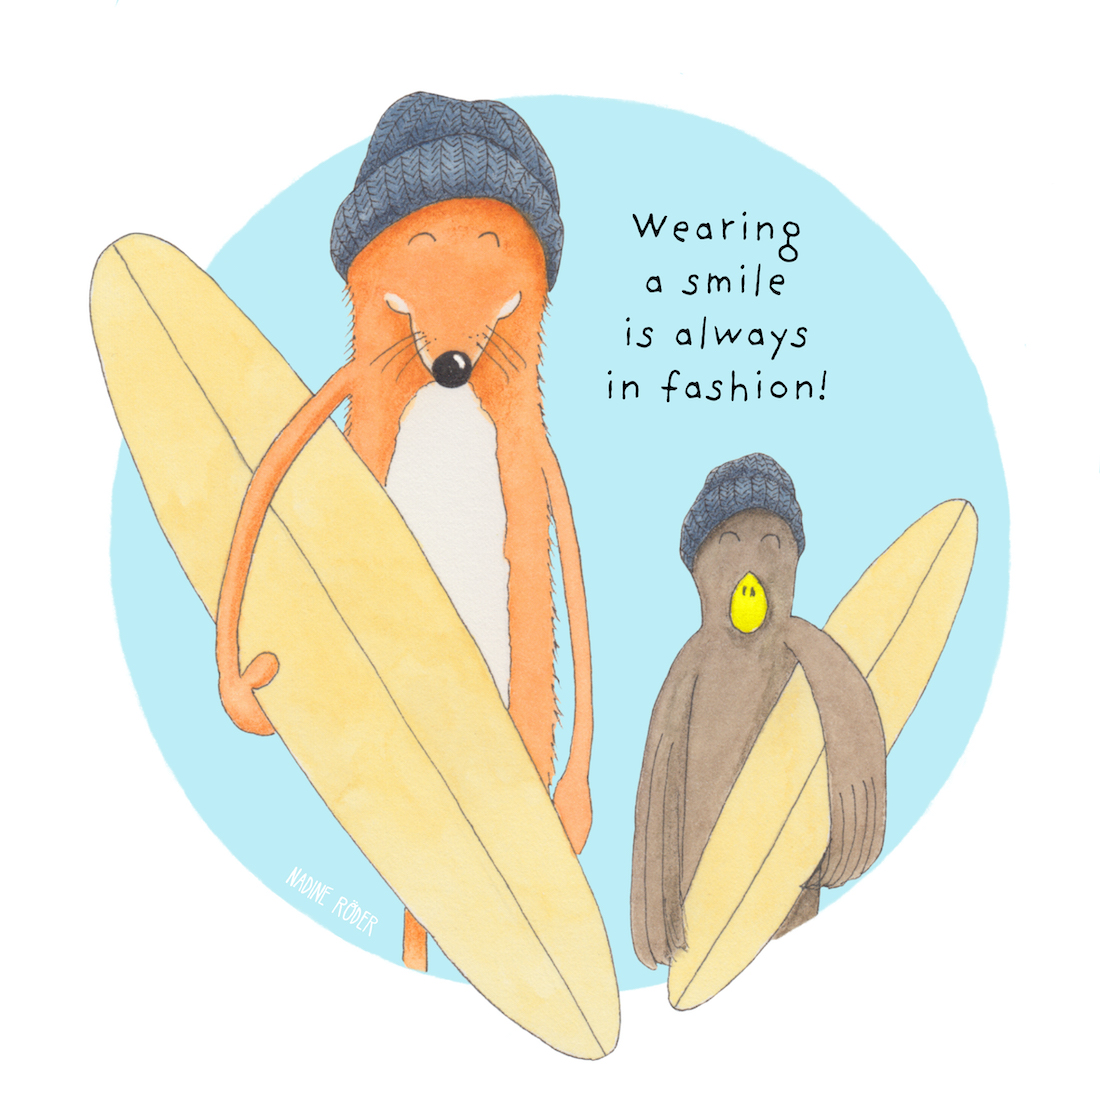 https://nadineroeder.com/wp-content/uploads/2020/12/Nadine-Roeder-Illustration-Surfing-Animals-Club-Wearing-a-smile.jpg